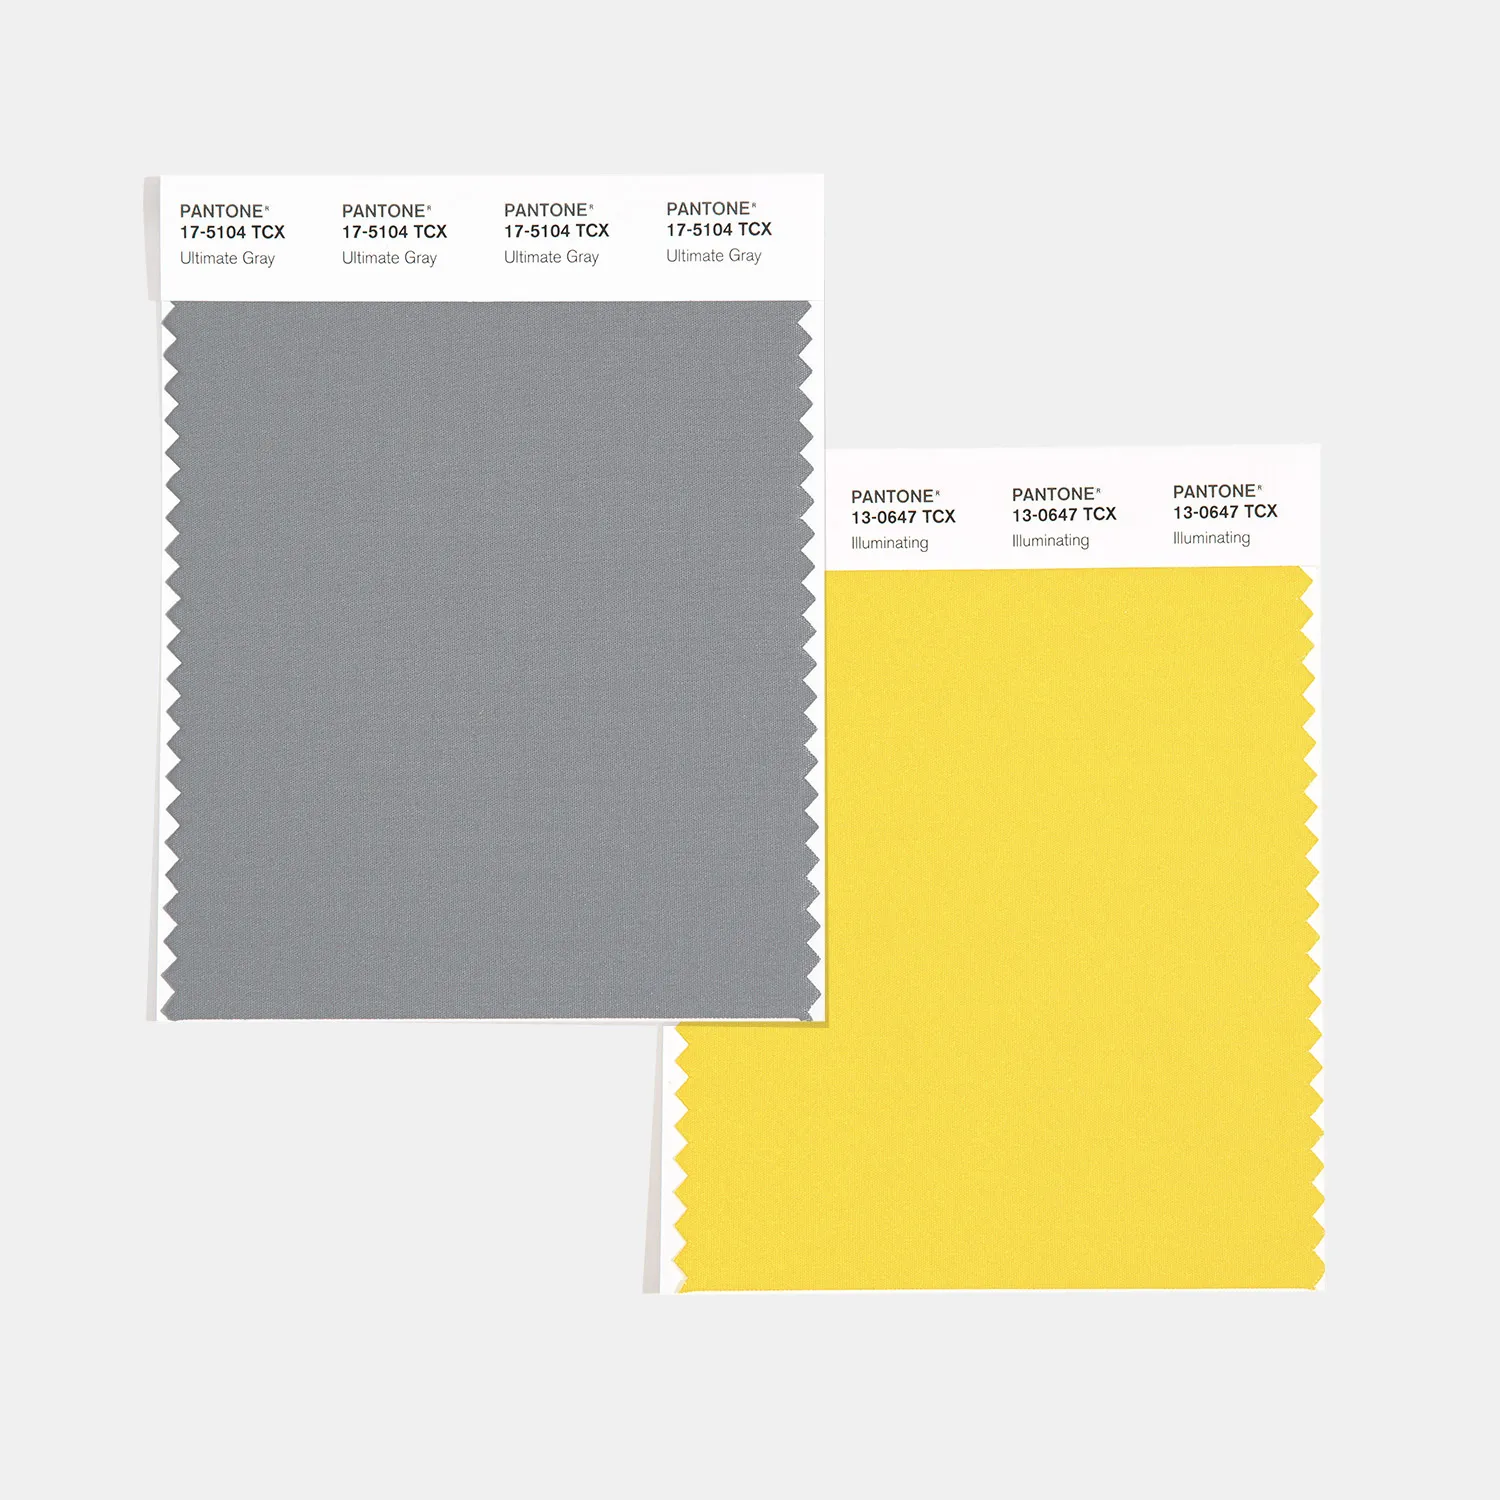 7 Ways to Use Pantone's Color of the Year